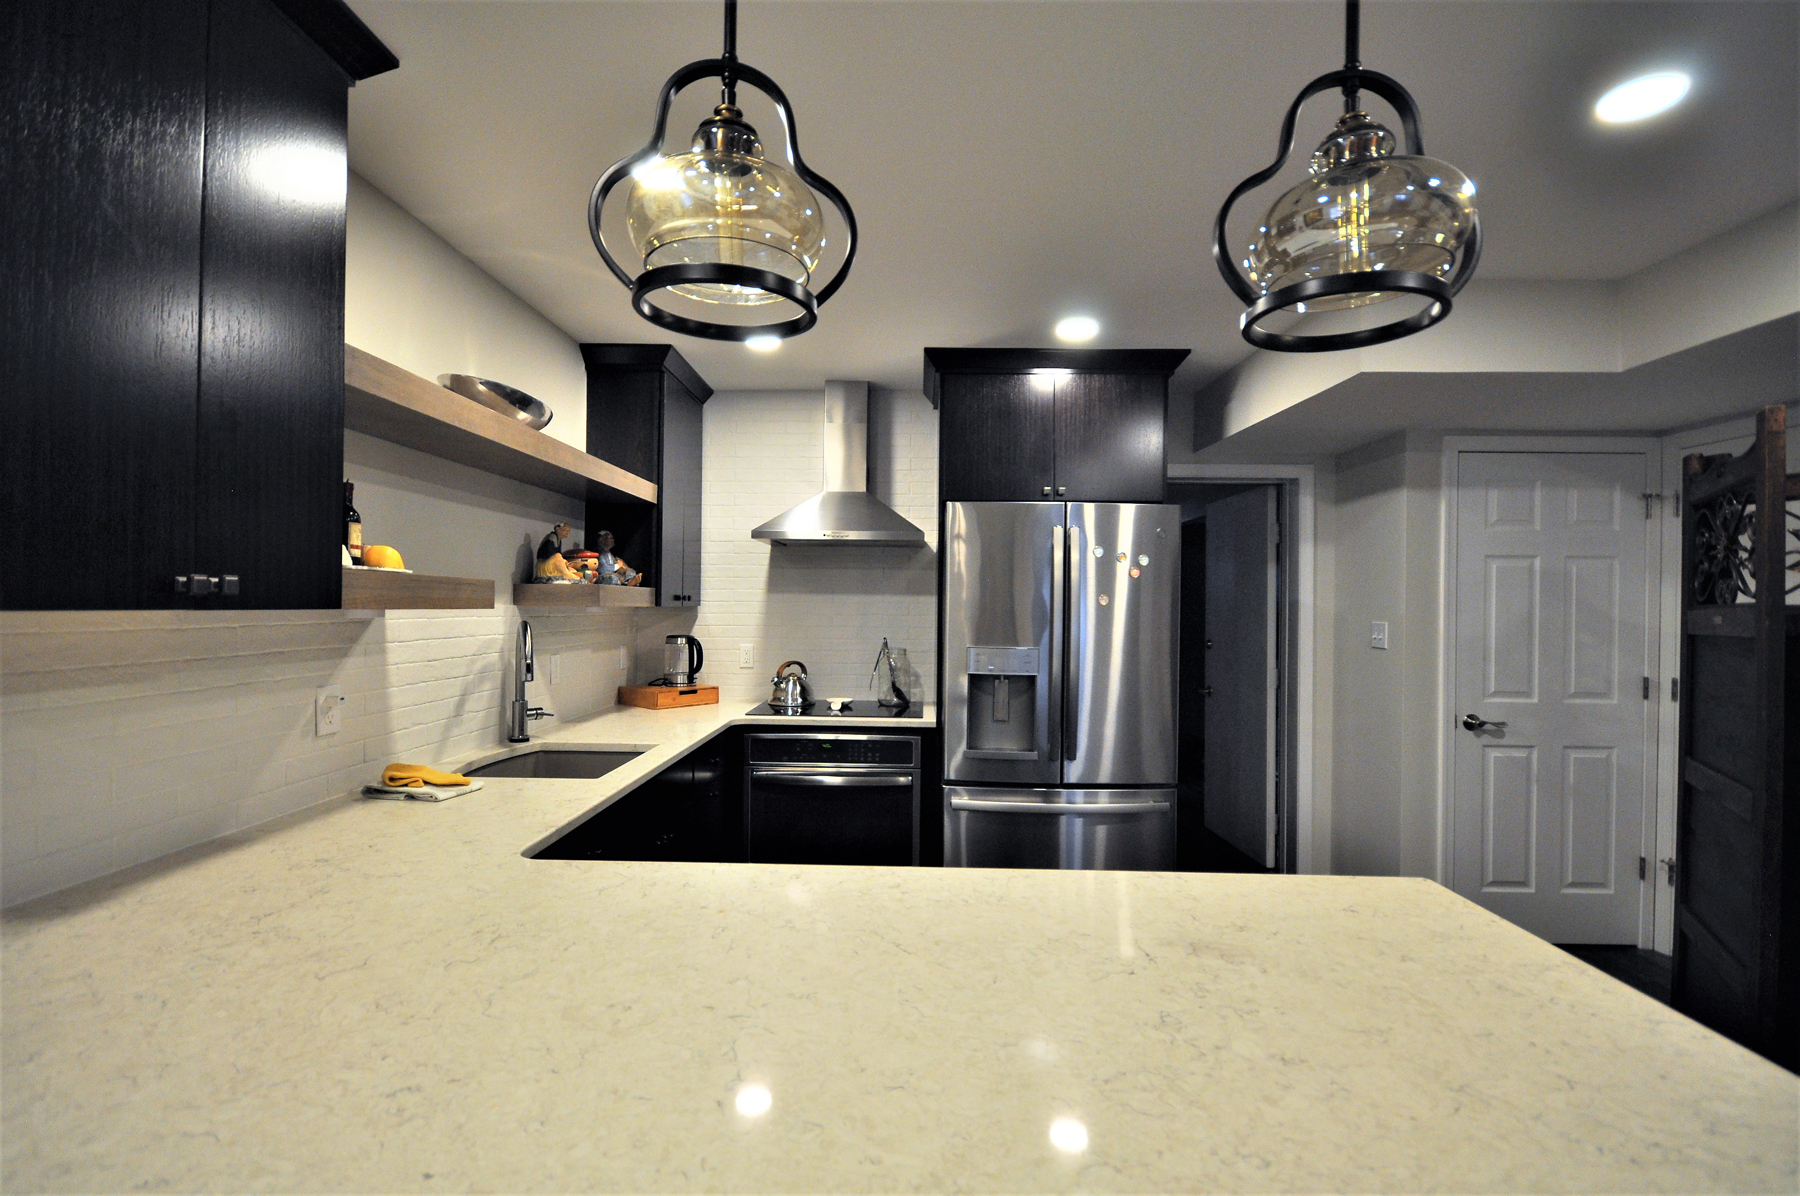 Full Kitchen Remodel with white counter tops in Montgomery County, MD